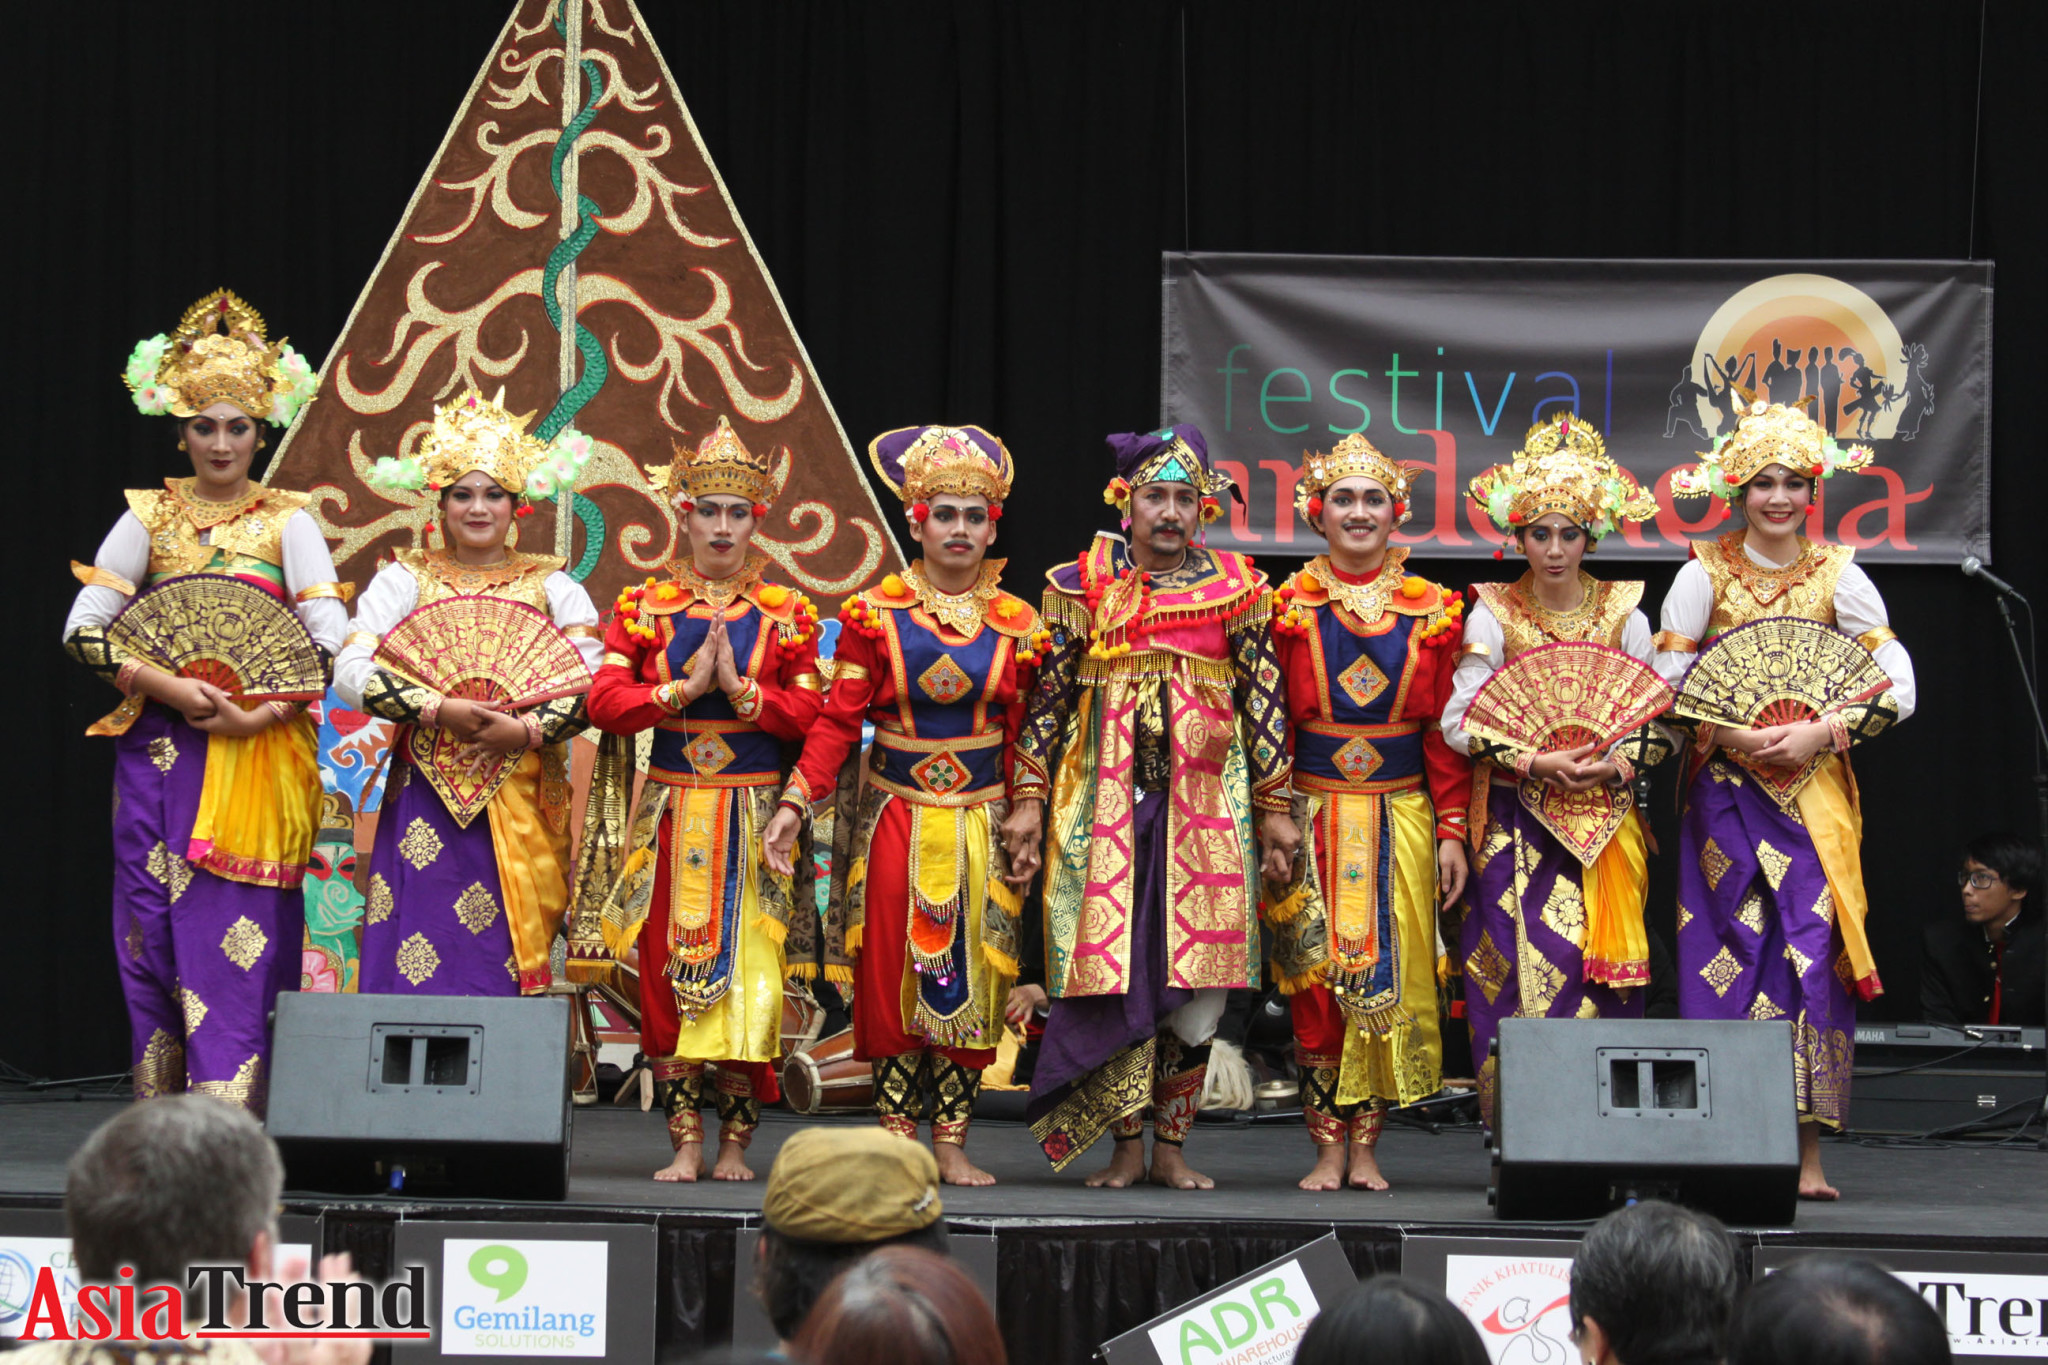 Festival of Indonesia: Unity in Diversity  Asia Trend